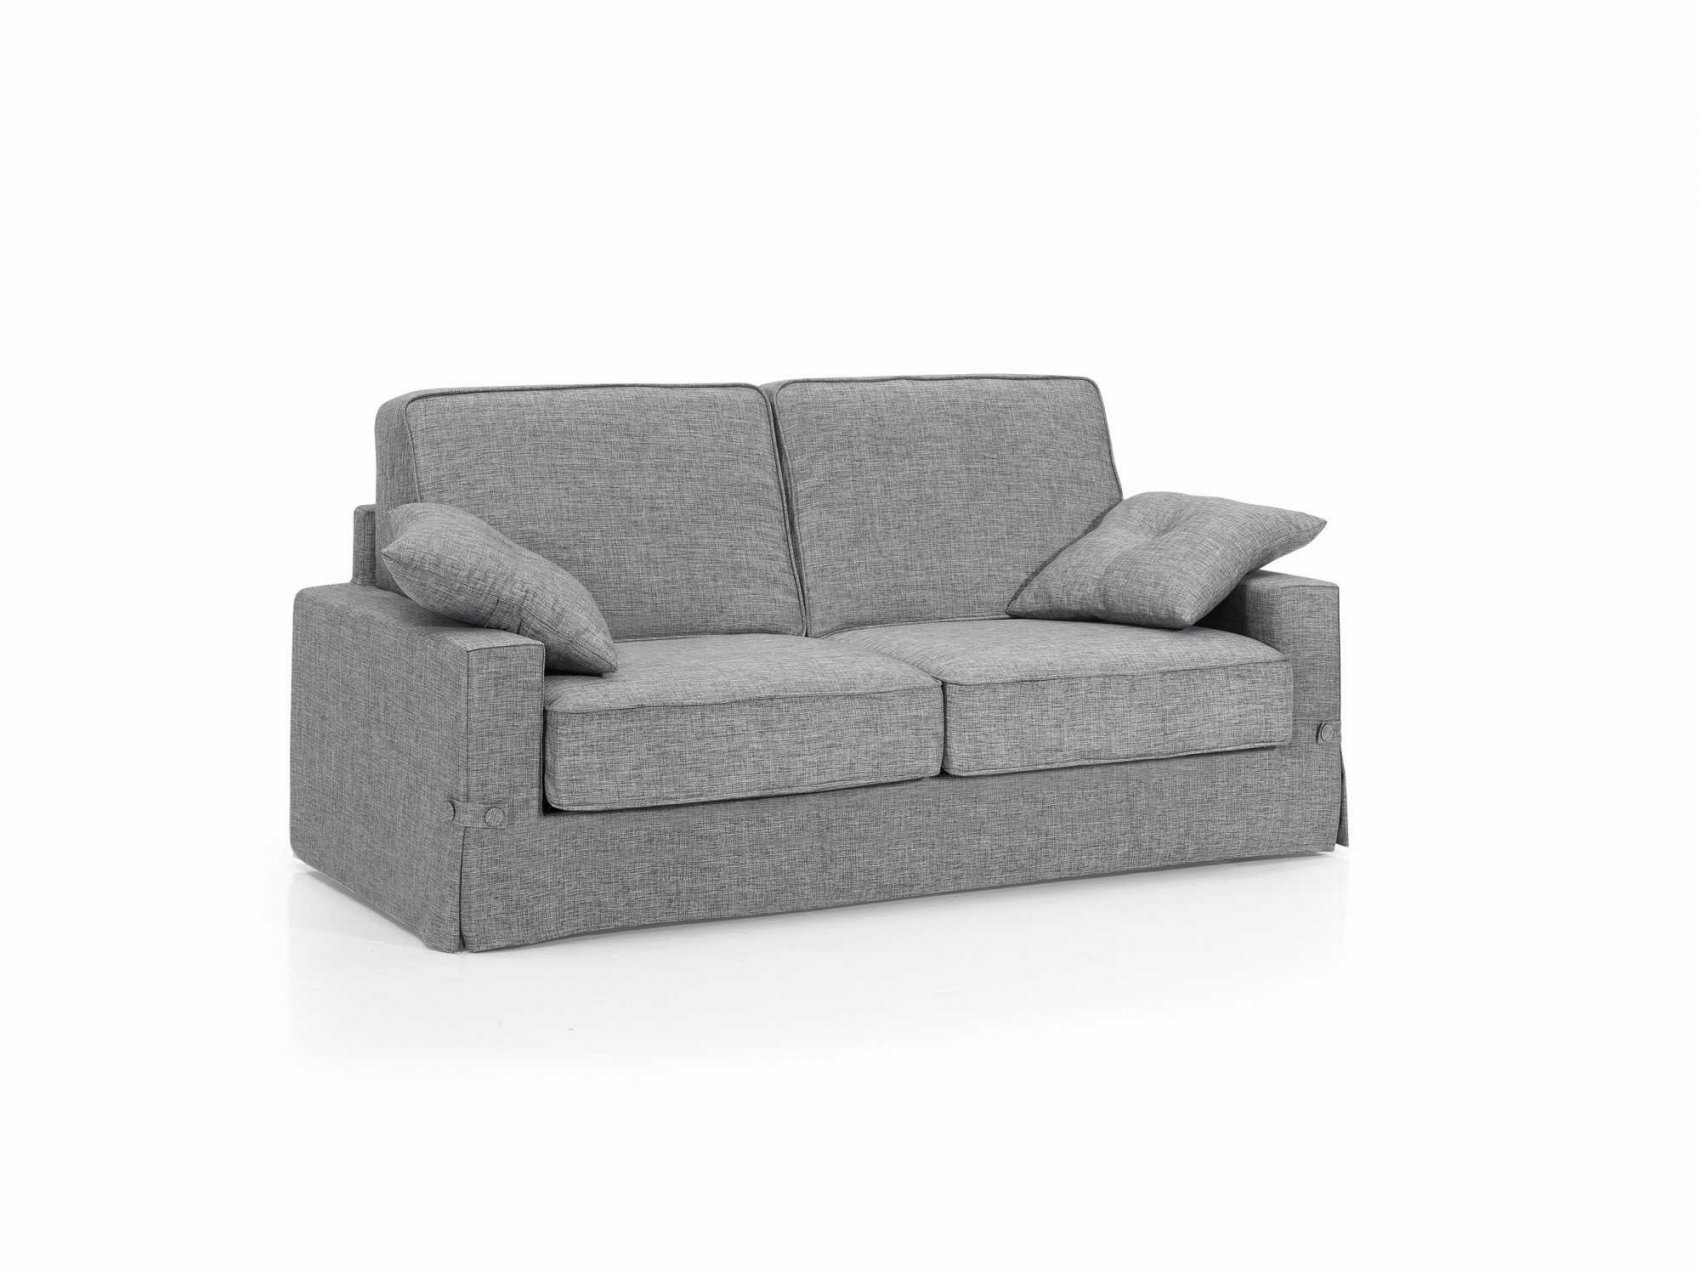 Canape Convertible Couchage Quotidien 160x200 Canapé Lit Bz Couchage Quoti N